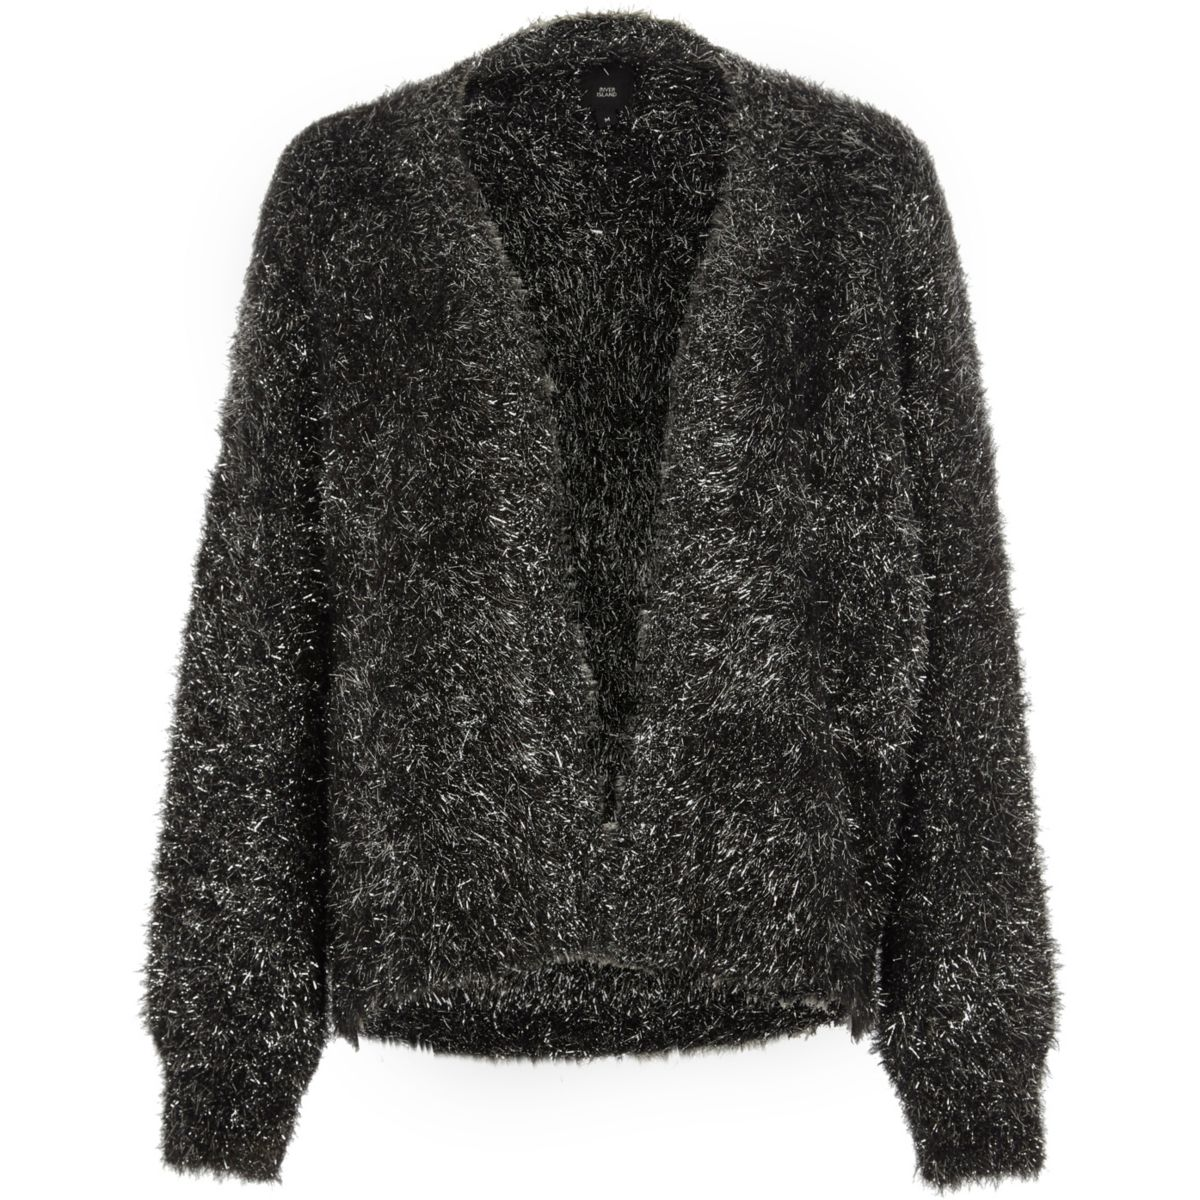 Women's Black Cardigan Sweaters. Showing 48 of results that match your query. Search Product Result. Product - Women Loose Sweater Long Sleeve Knitted Cardigan Outwear Jacket Coat BK S. Product Image. Price $ Product Title. Women Loose Sweater Long Sleeve Knitted Cardigan Outwear Jacket Coat BK S.